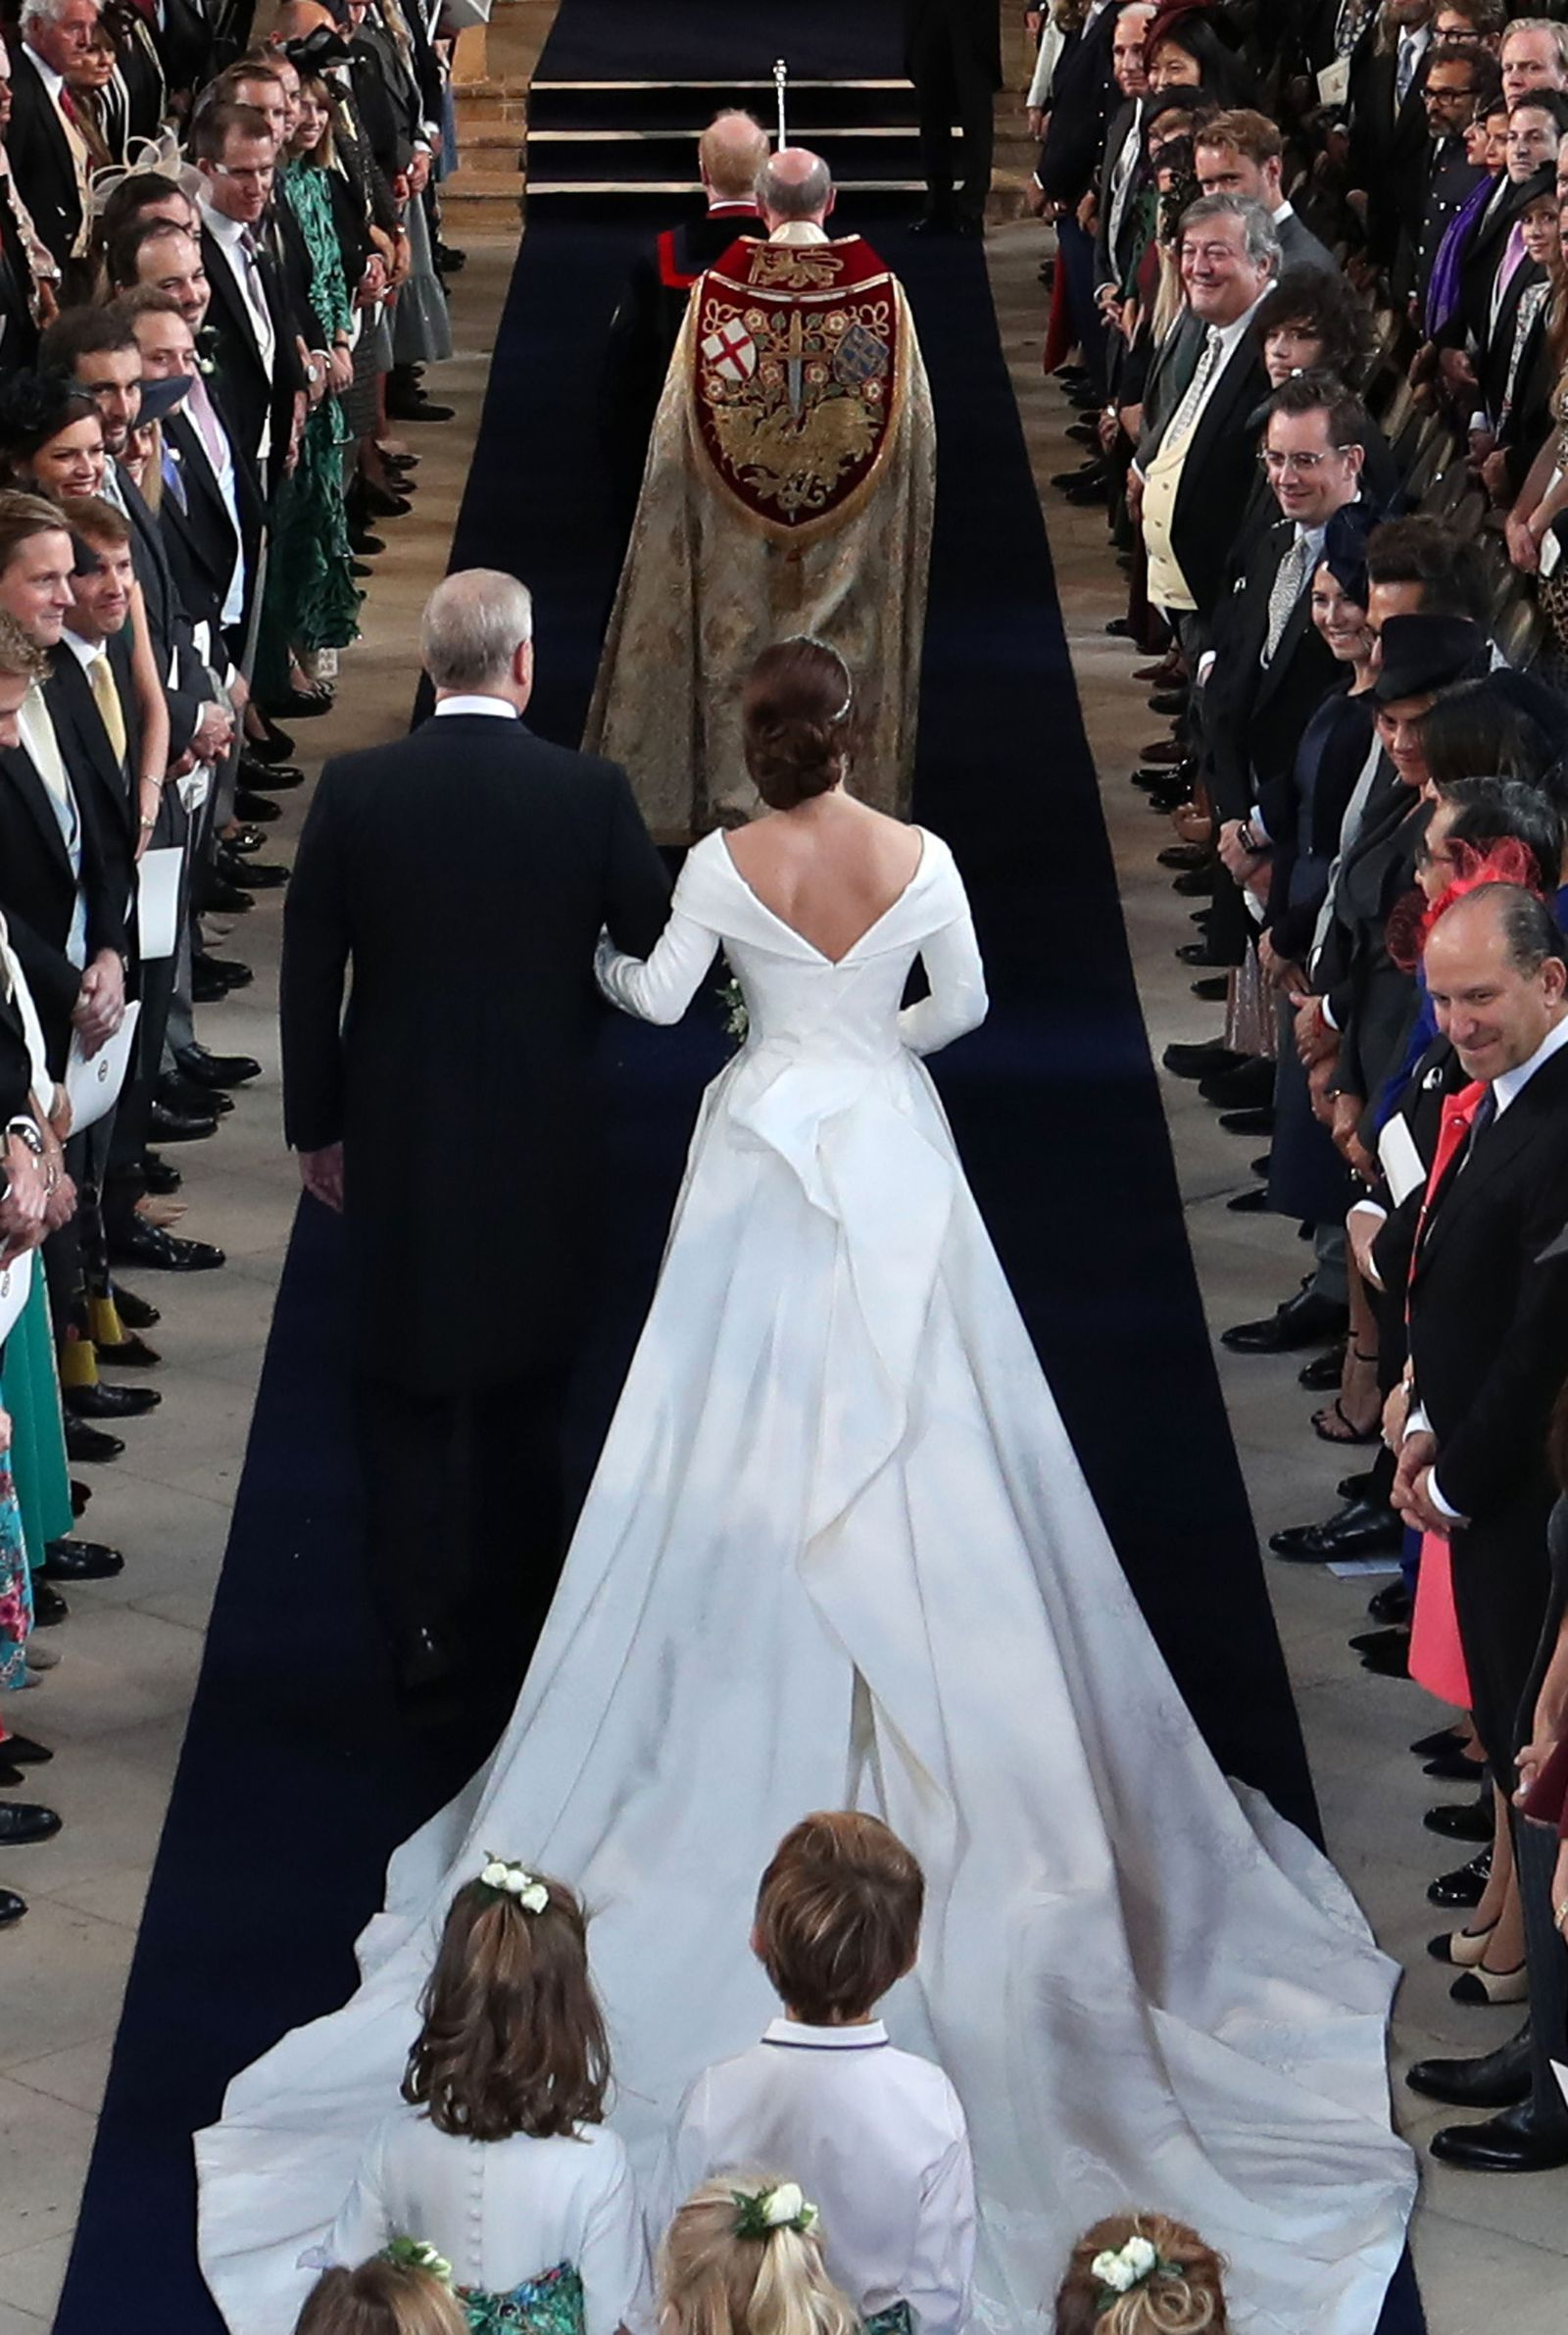 How Princess Eugenie S Wedding Dress Compared To Meghan Markle S And Kate Middleton S Royal Wedding Gowns Eugenie Wedding Royal Wedding Dress